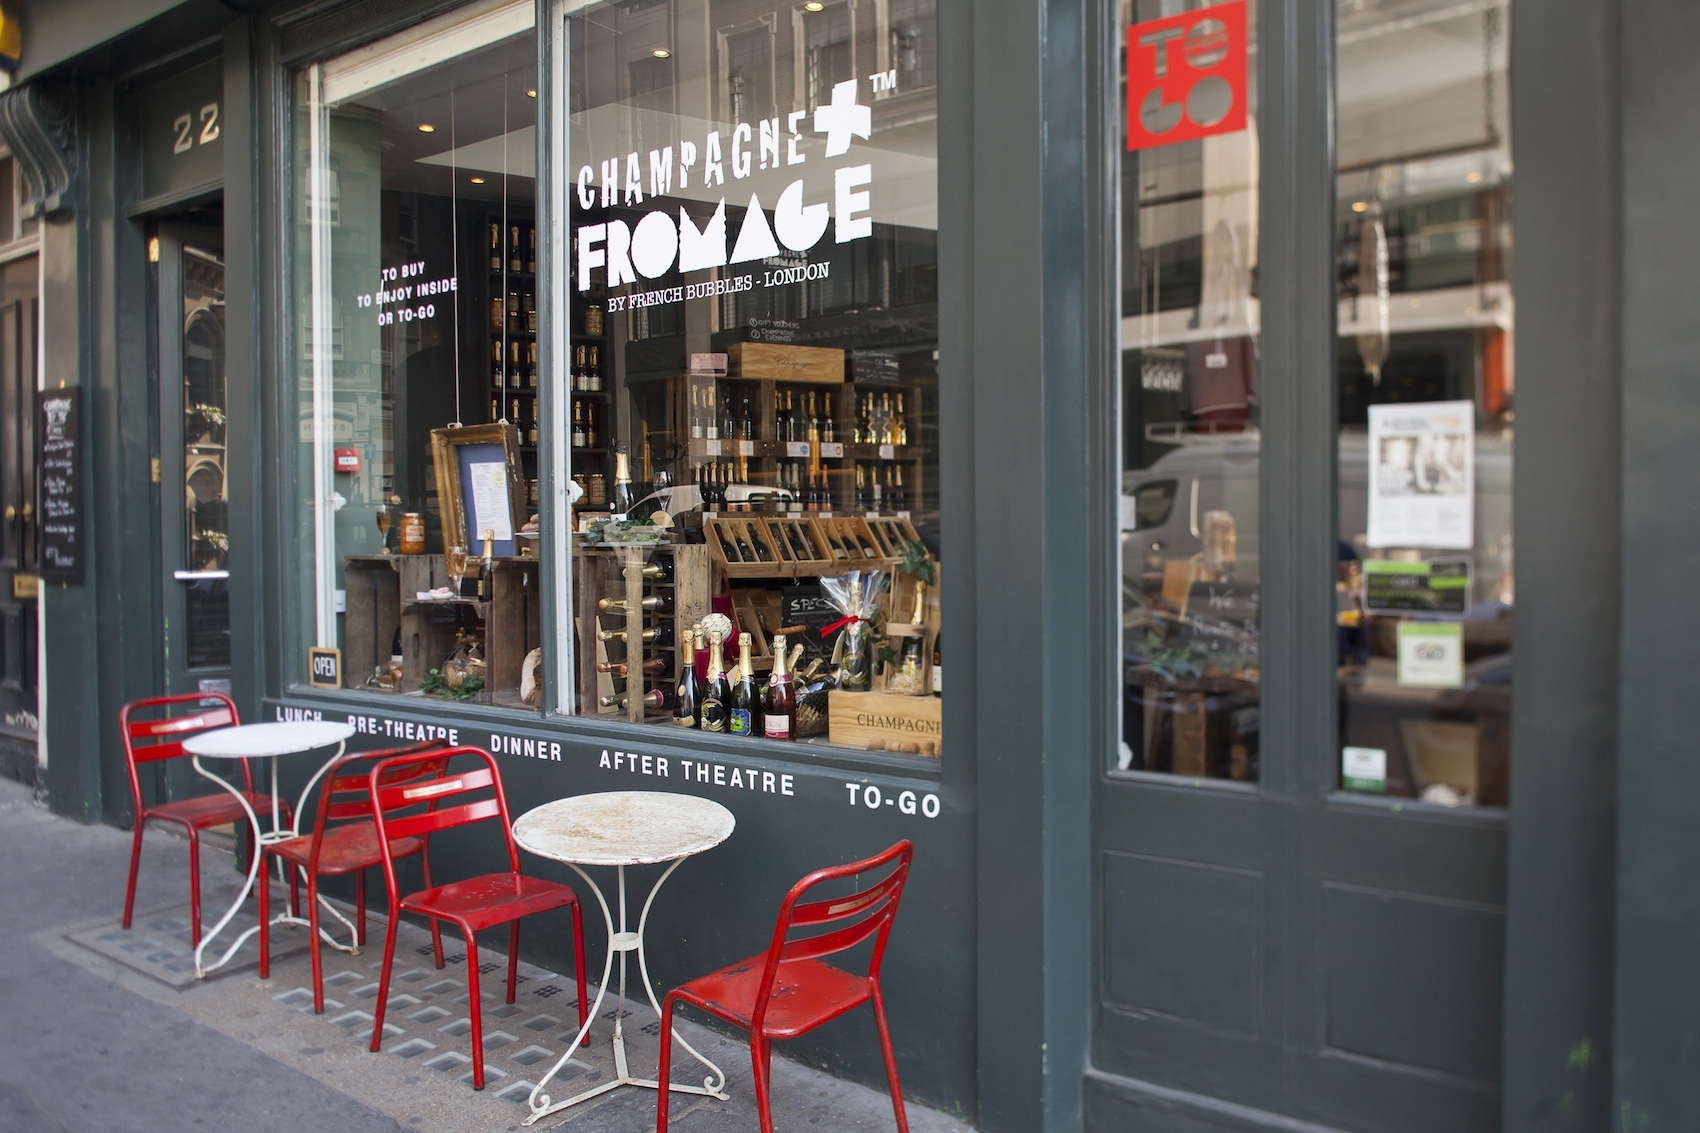 champagne-et-fromage-exterior-with-tables3